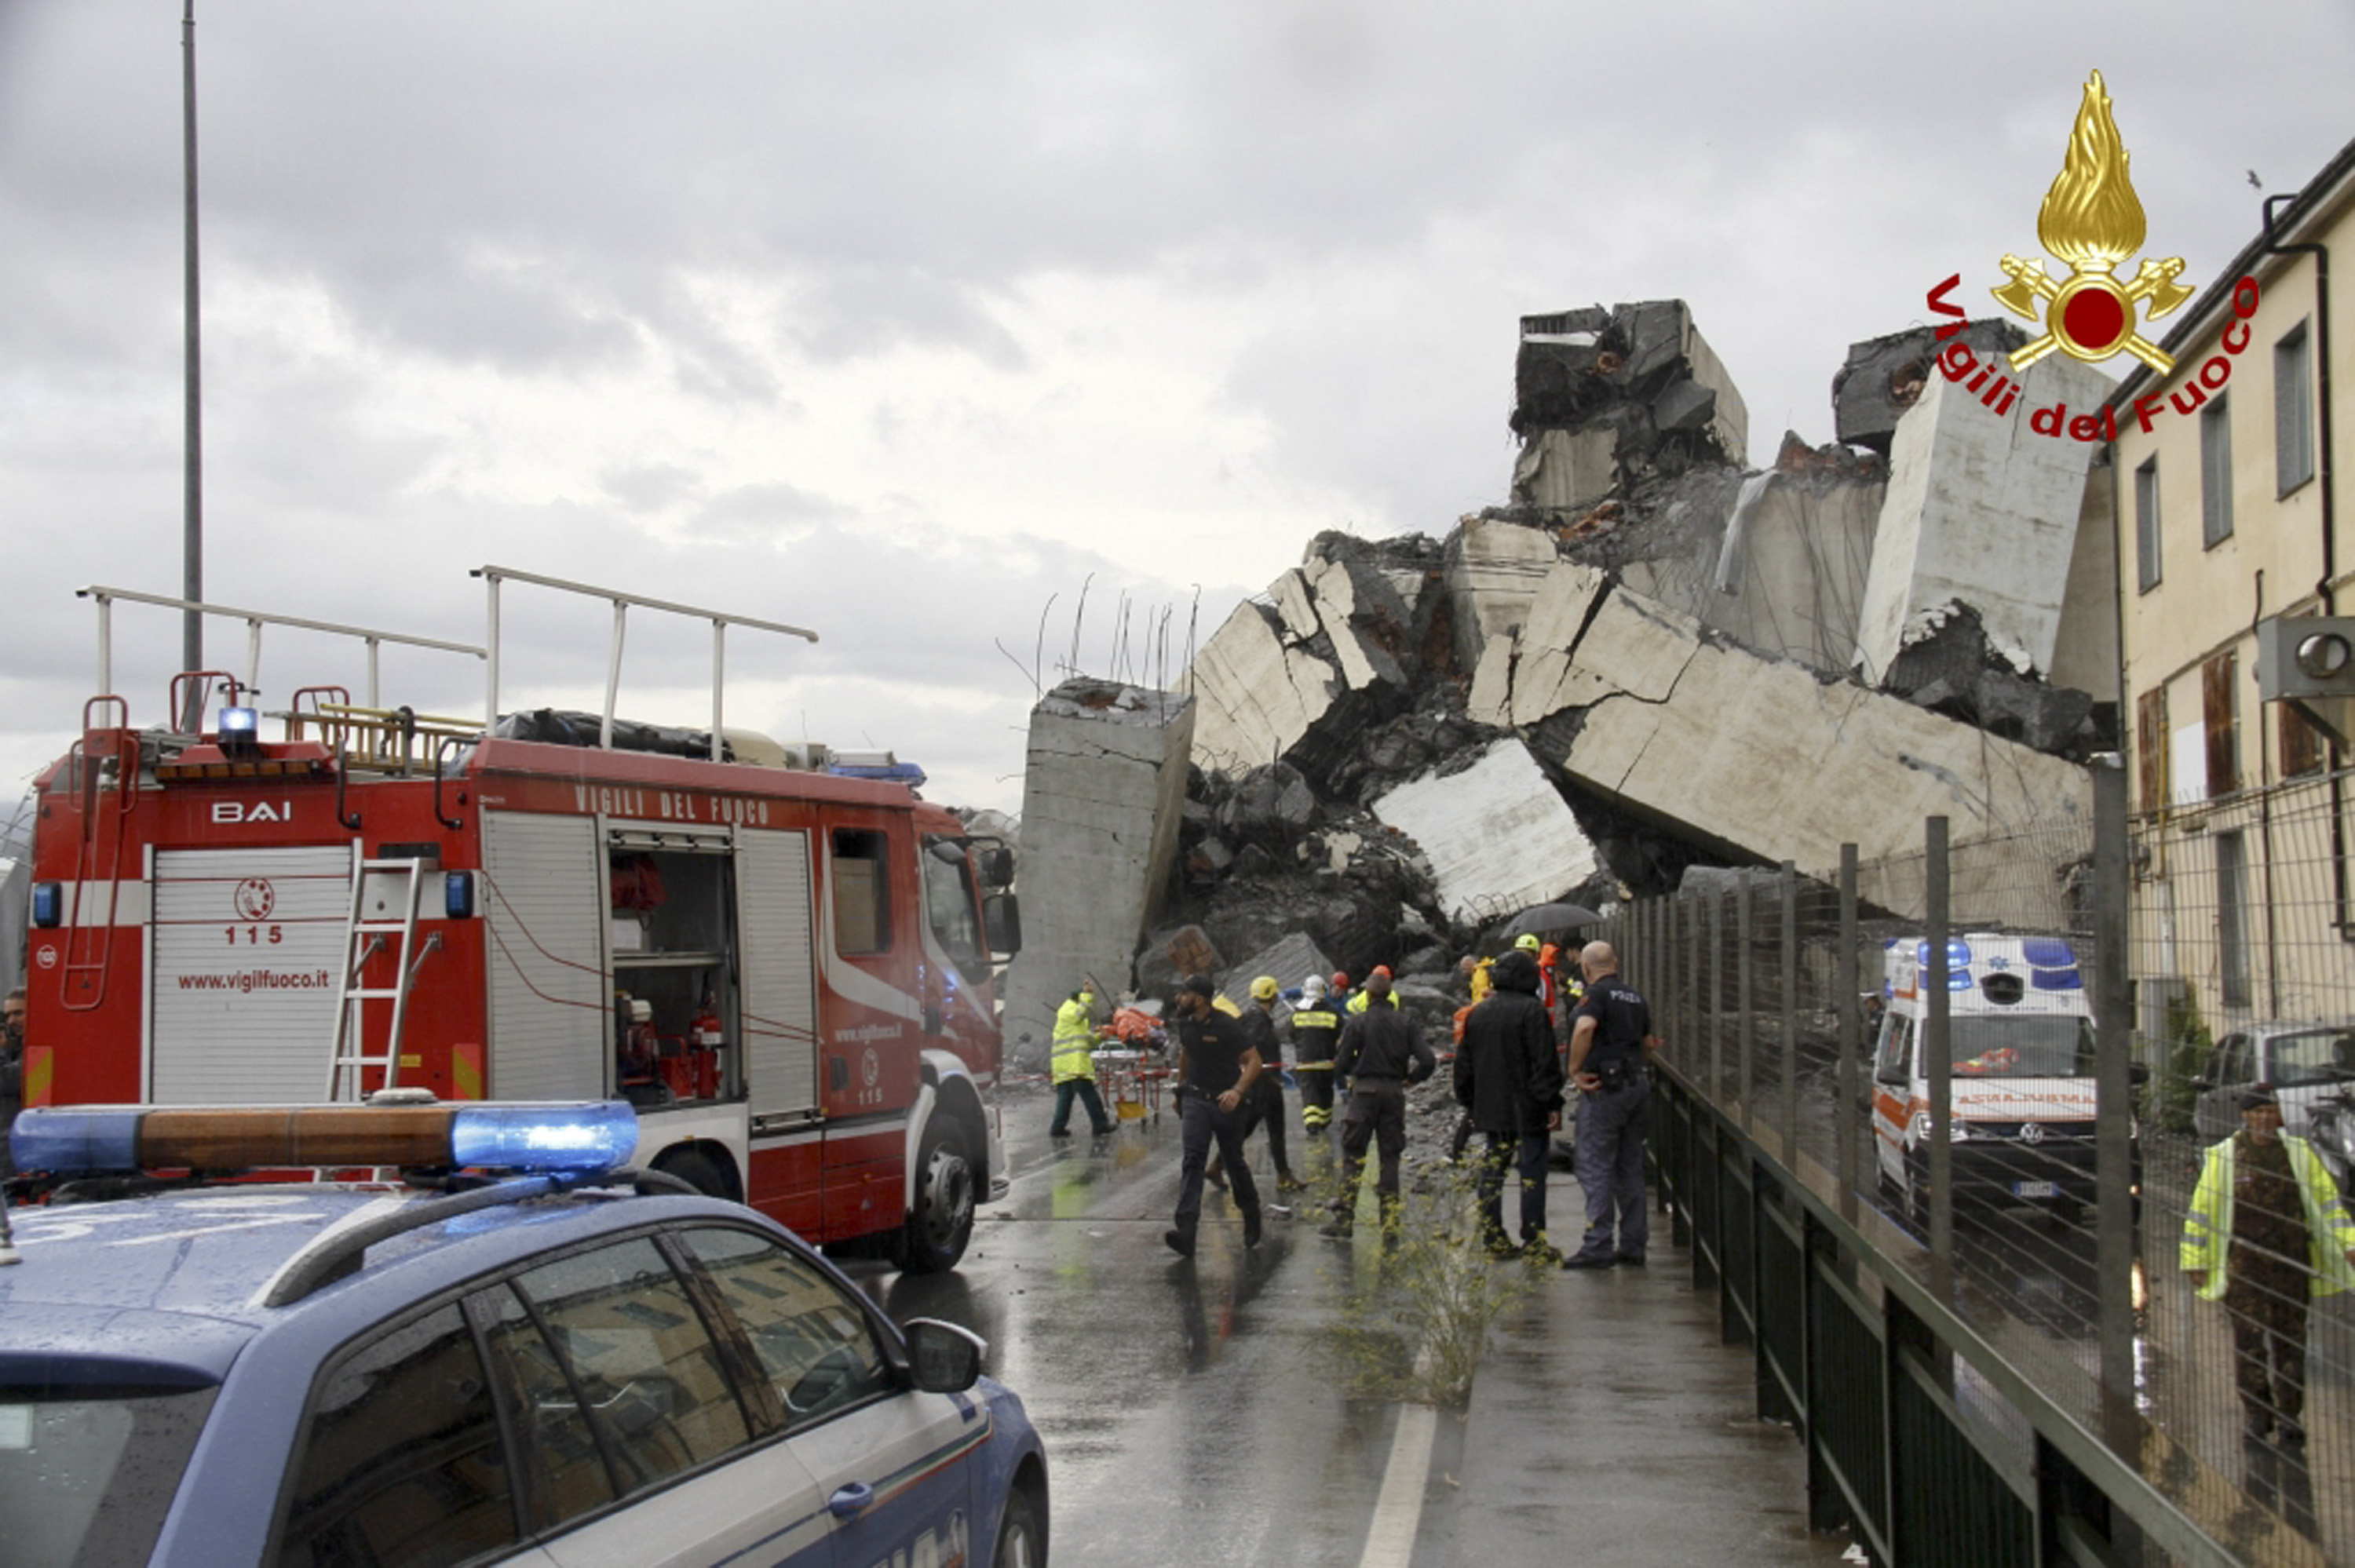 <div class='meta'><div class='origin-logo' data-origin='none'></div><span class='caption-text' data-credit='Vigili Del Fuoco via AP'>This photo released by the Italian firefighters, rescuers work among the rubble of the collapsed Morandi highway bridge in Genoa, northern Italy, Tuesday, Aug. 14, 2018.</span></div>